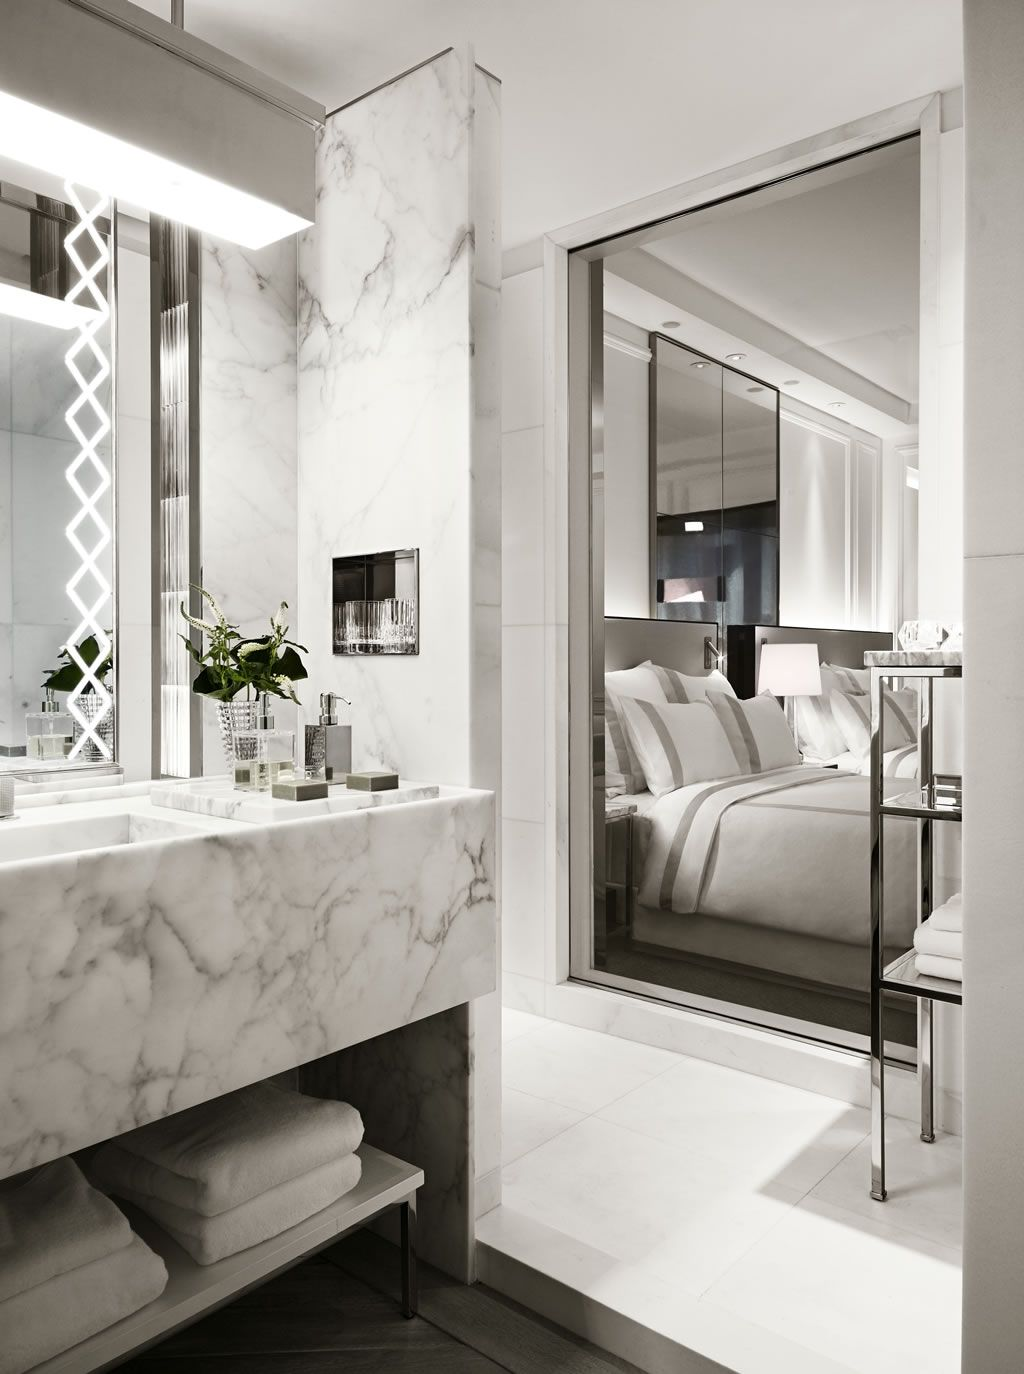 Bulgari Hotel New York | Bathrooms/Shower rooms | Pinterest ...